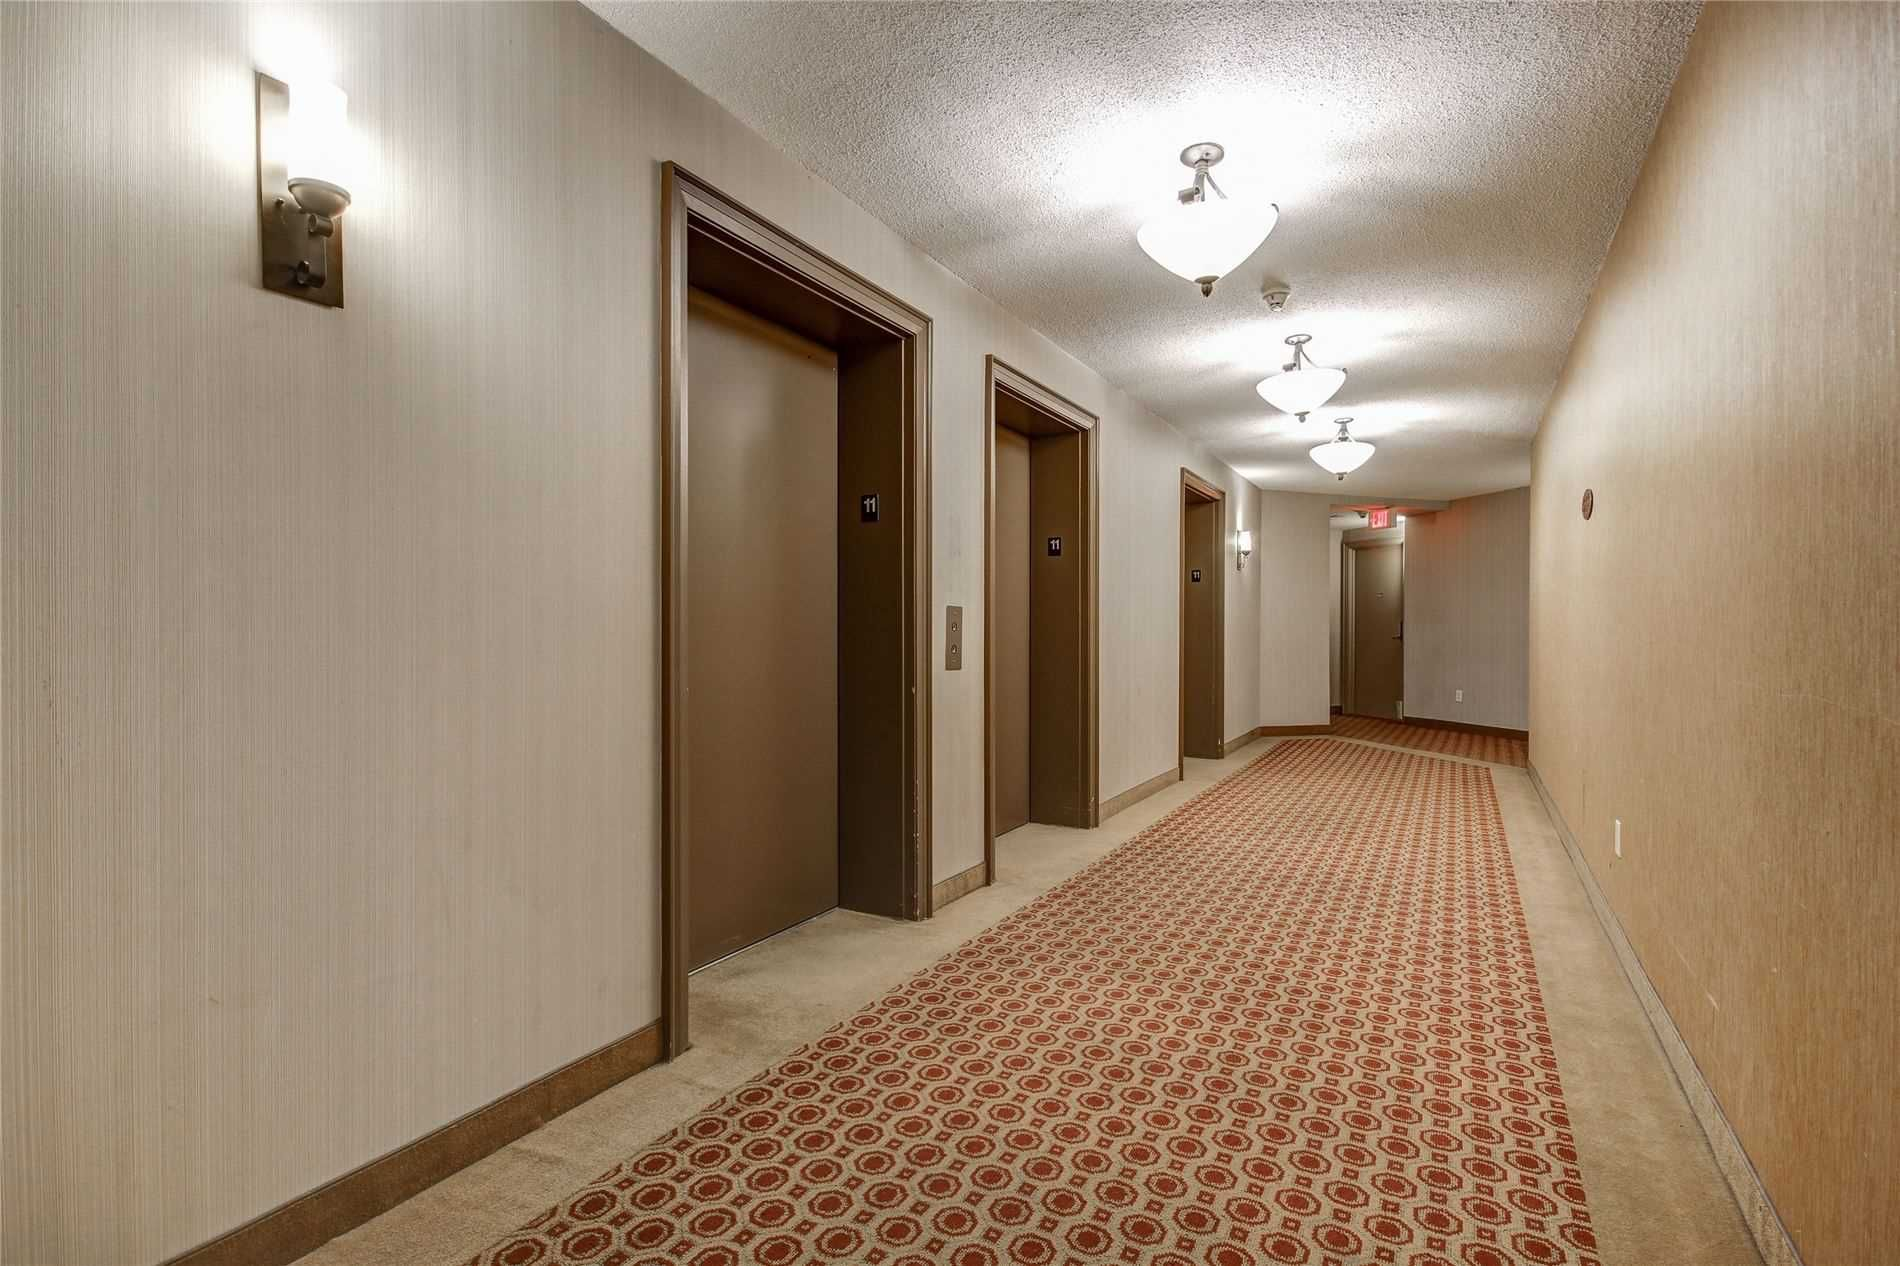 220 Forum Dr, unit 1106 for rent in Toronto - image #2